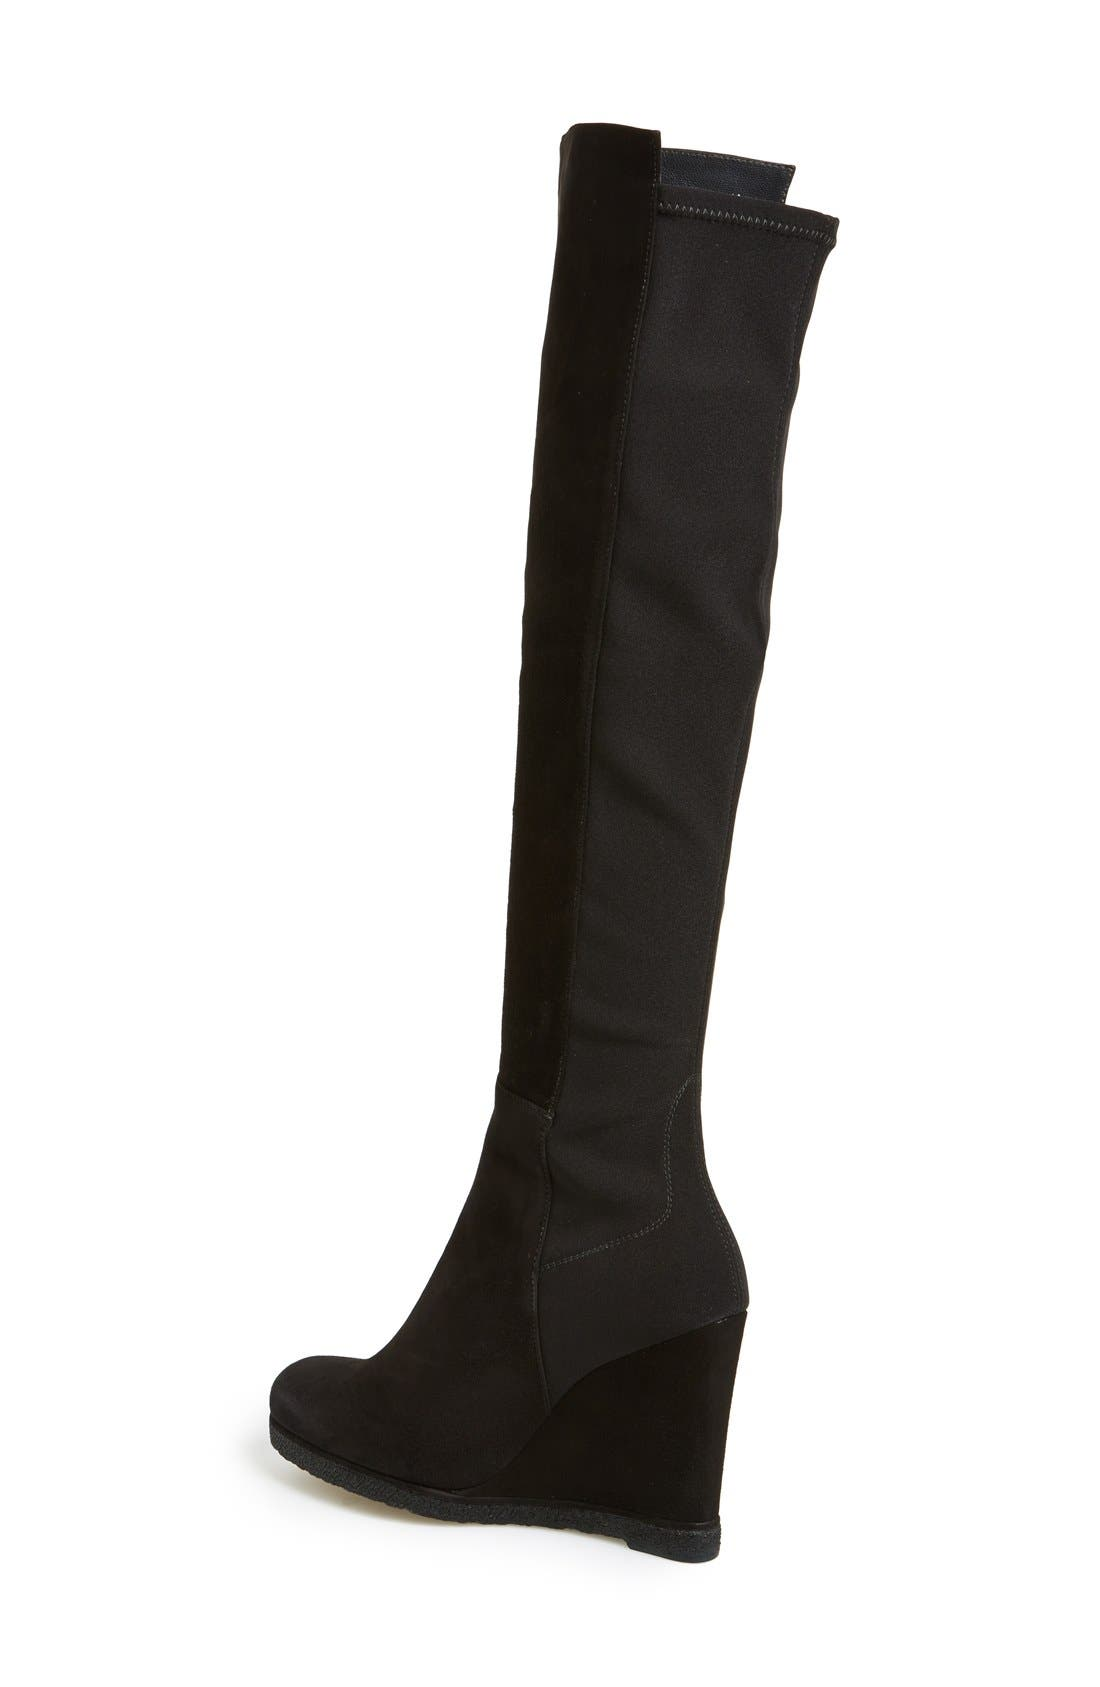 'Demiswoon' Over the Knee Boot,                             Alternate thumbnail 3, color,                             001